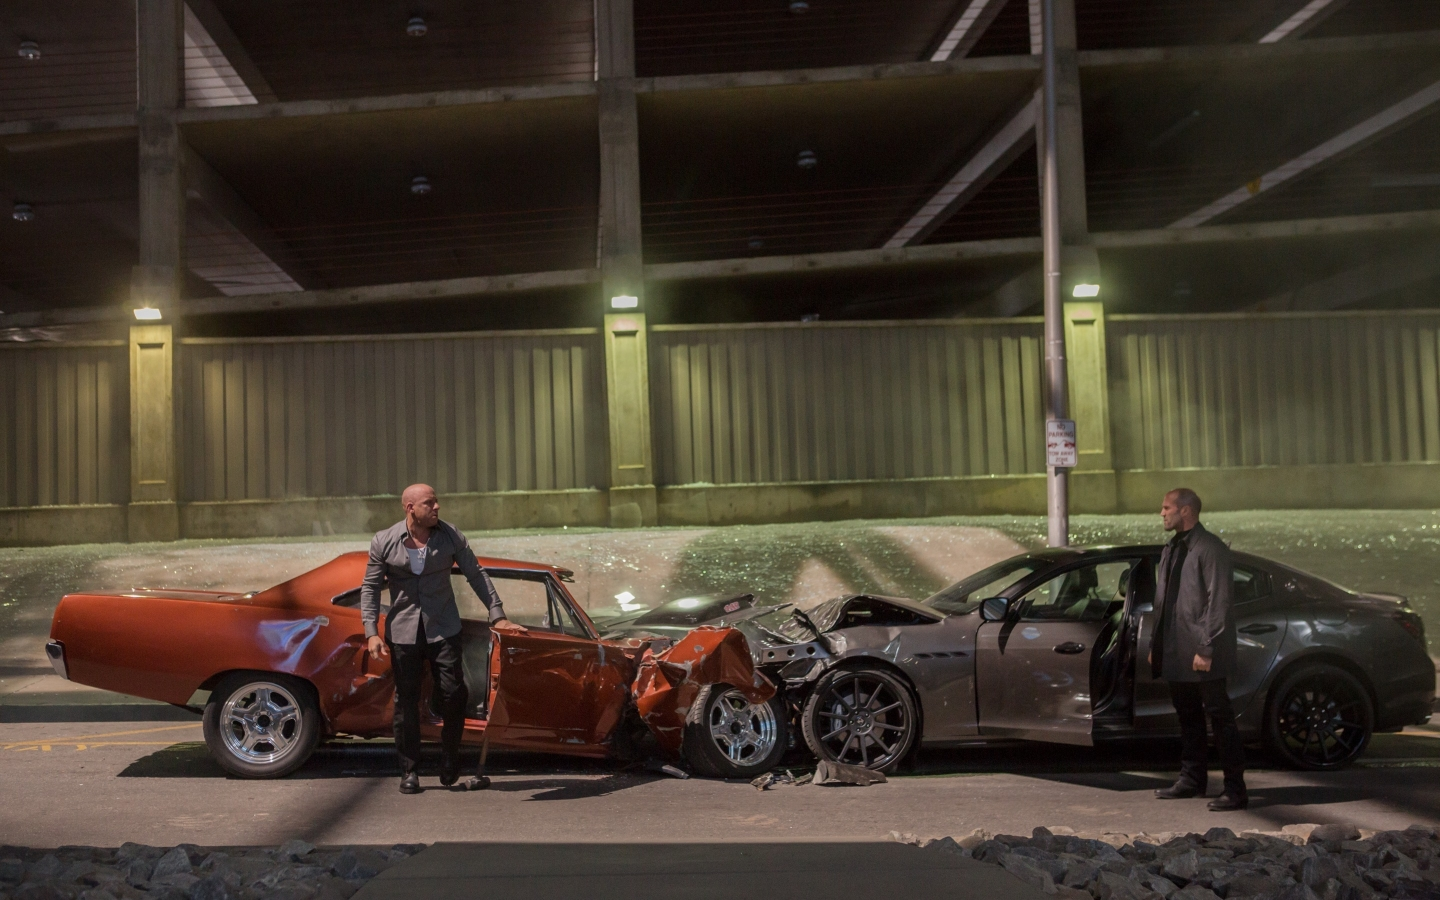 Fast And Furious 7 Movie Scene for 1440 x 900 widescreen resolution